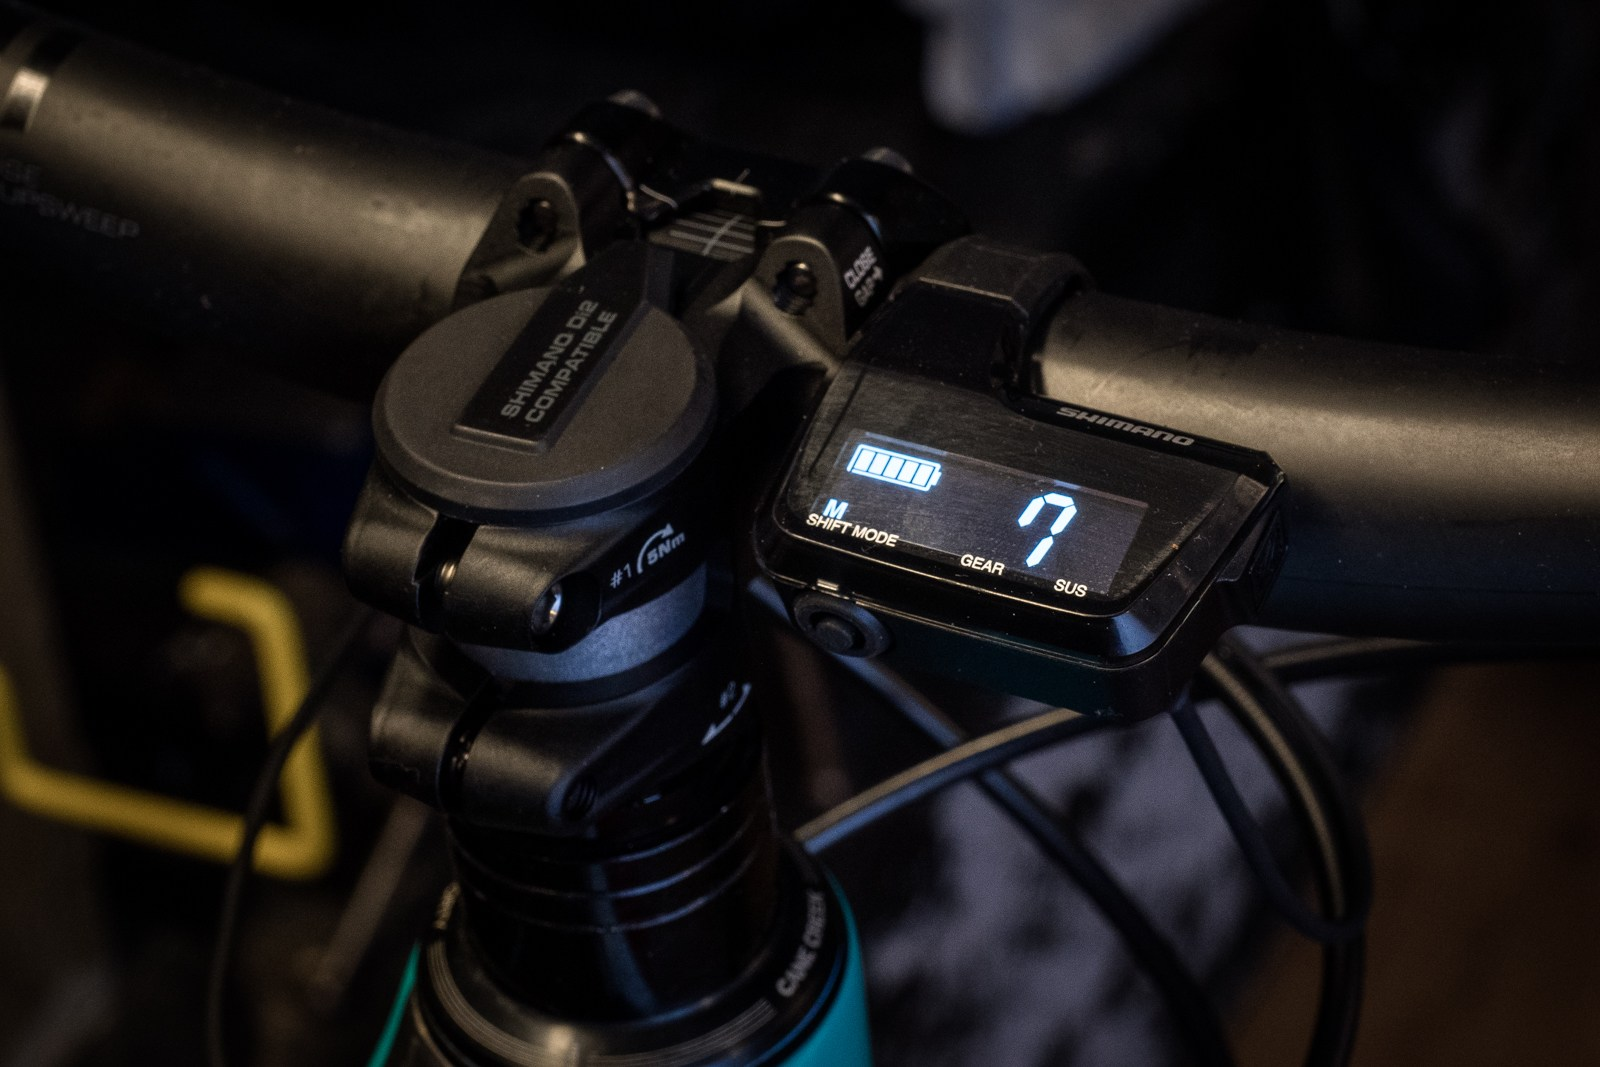 Shimano Di2 XT - first impressions shoot - display and steer tube